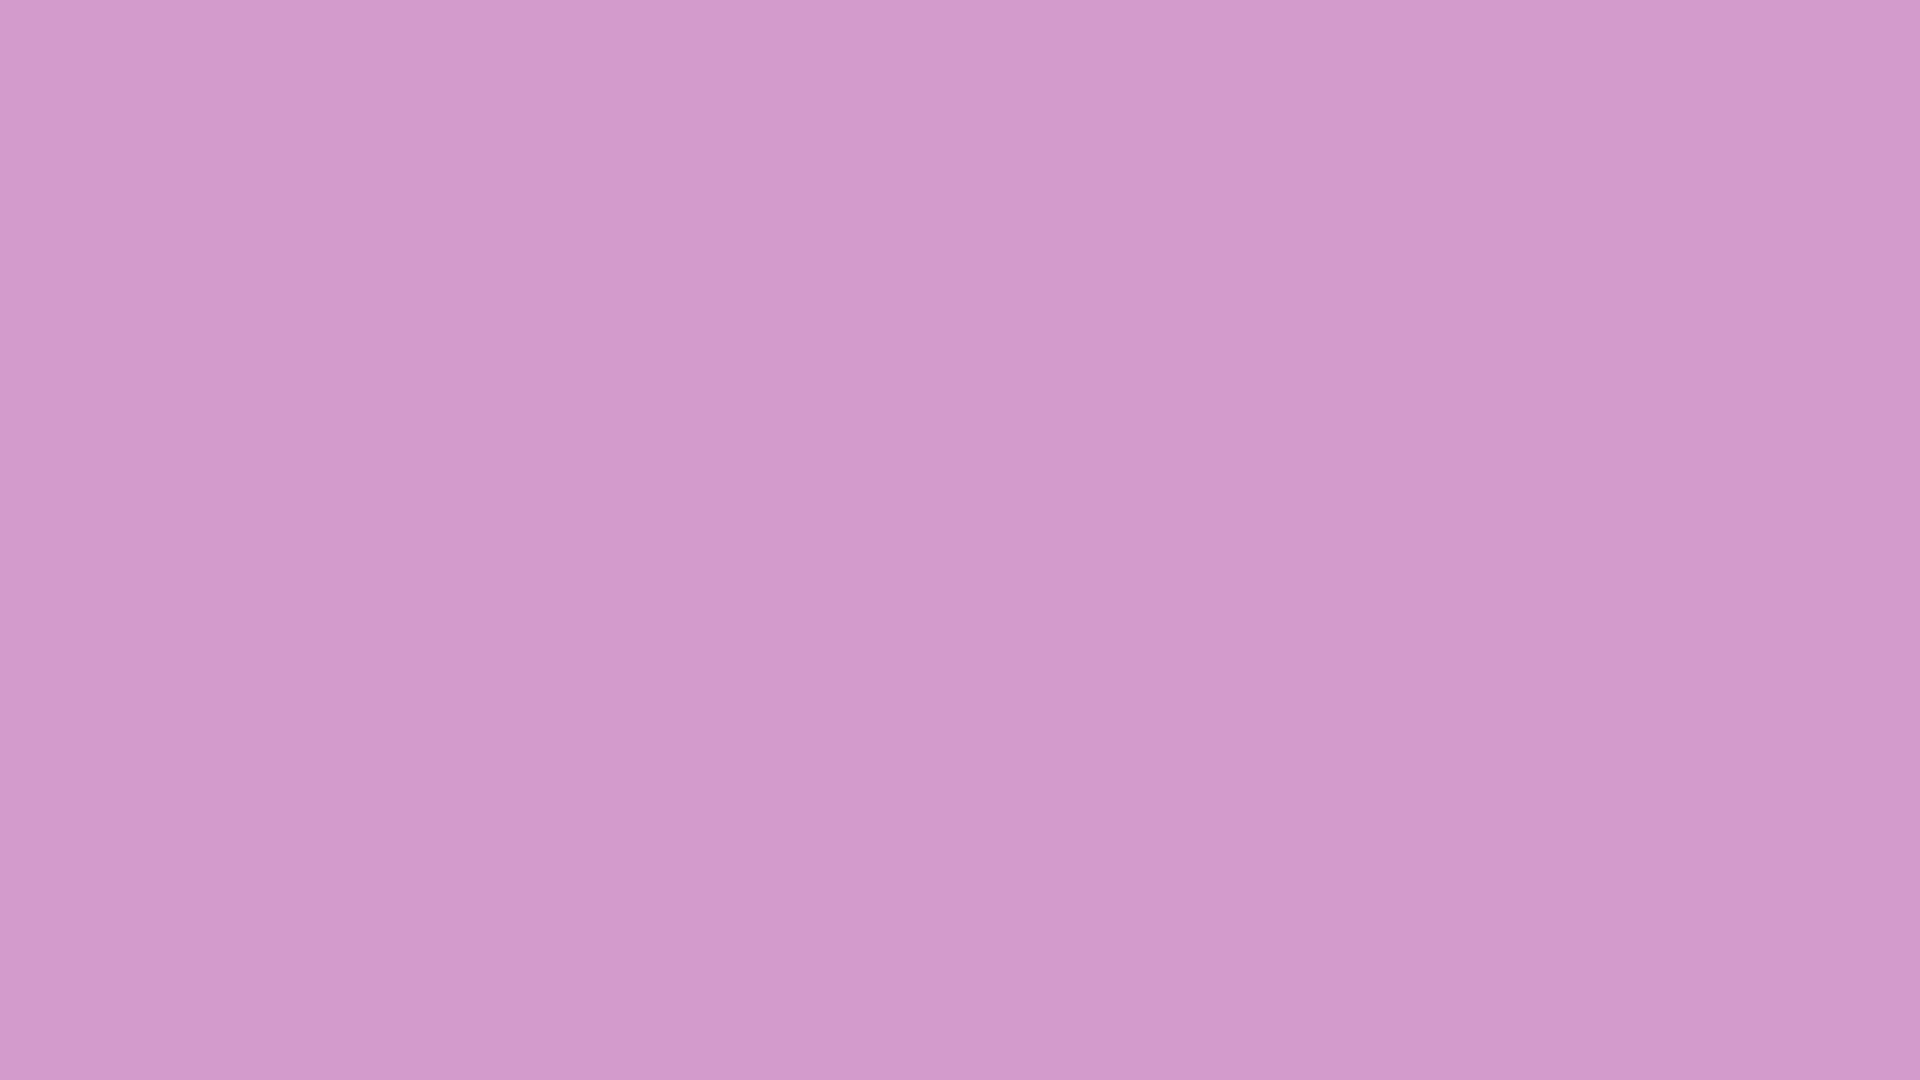 1920x1080 Light Medium Orchid Solid Color Background